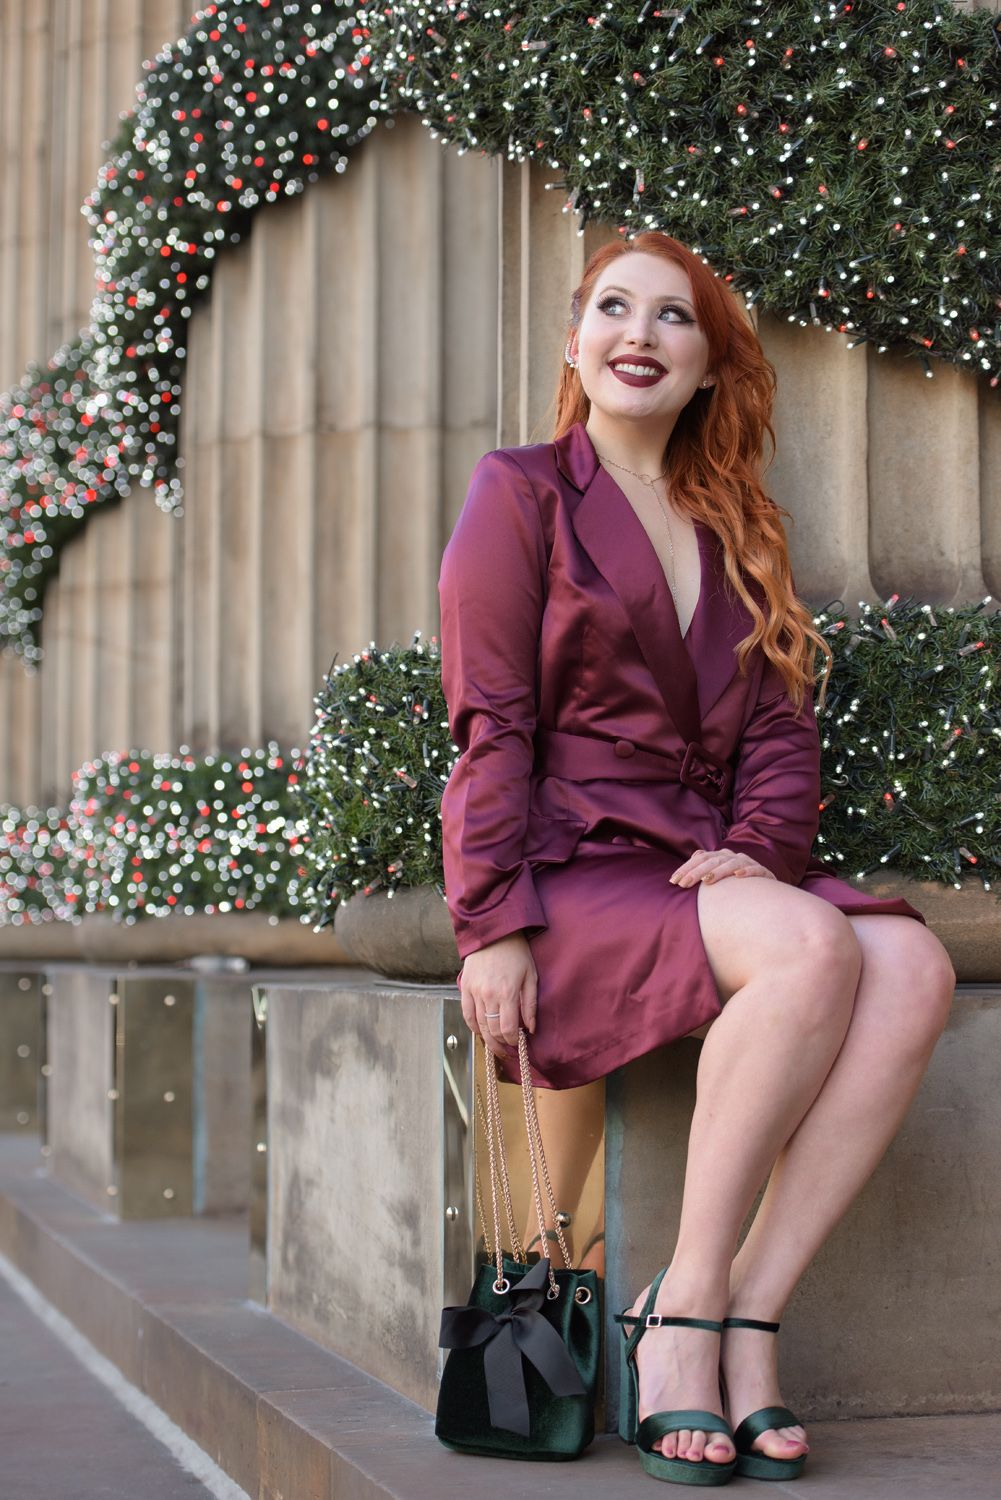 Scottish blogger Twenty-Something City Christmas dress at The Dome Edinburgh wearing Boohoo burgundy blazer dress